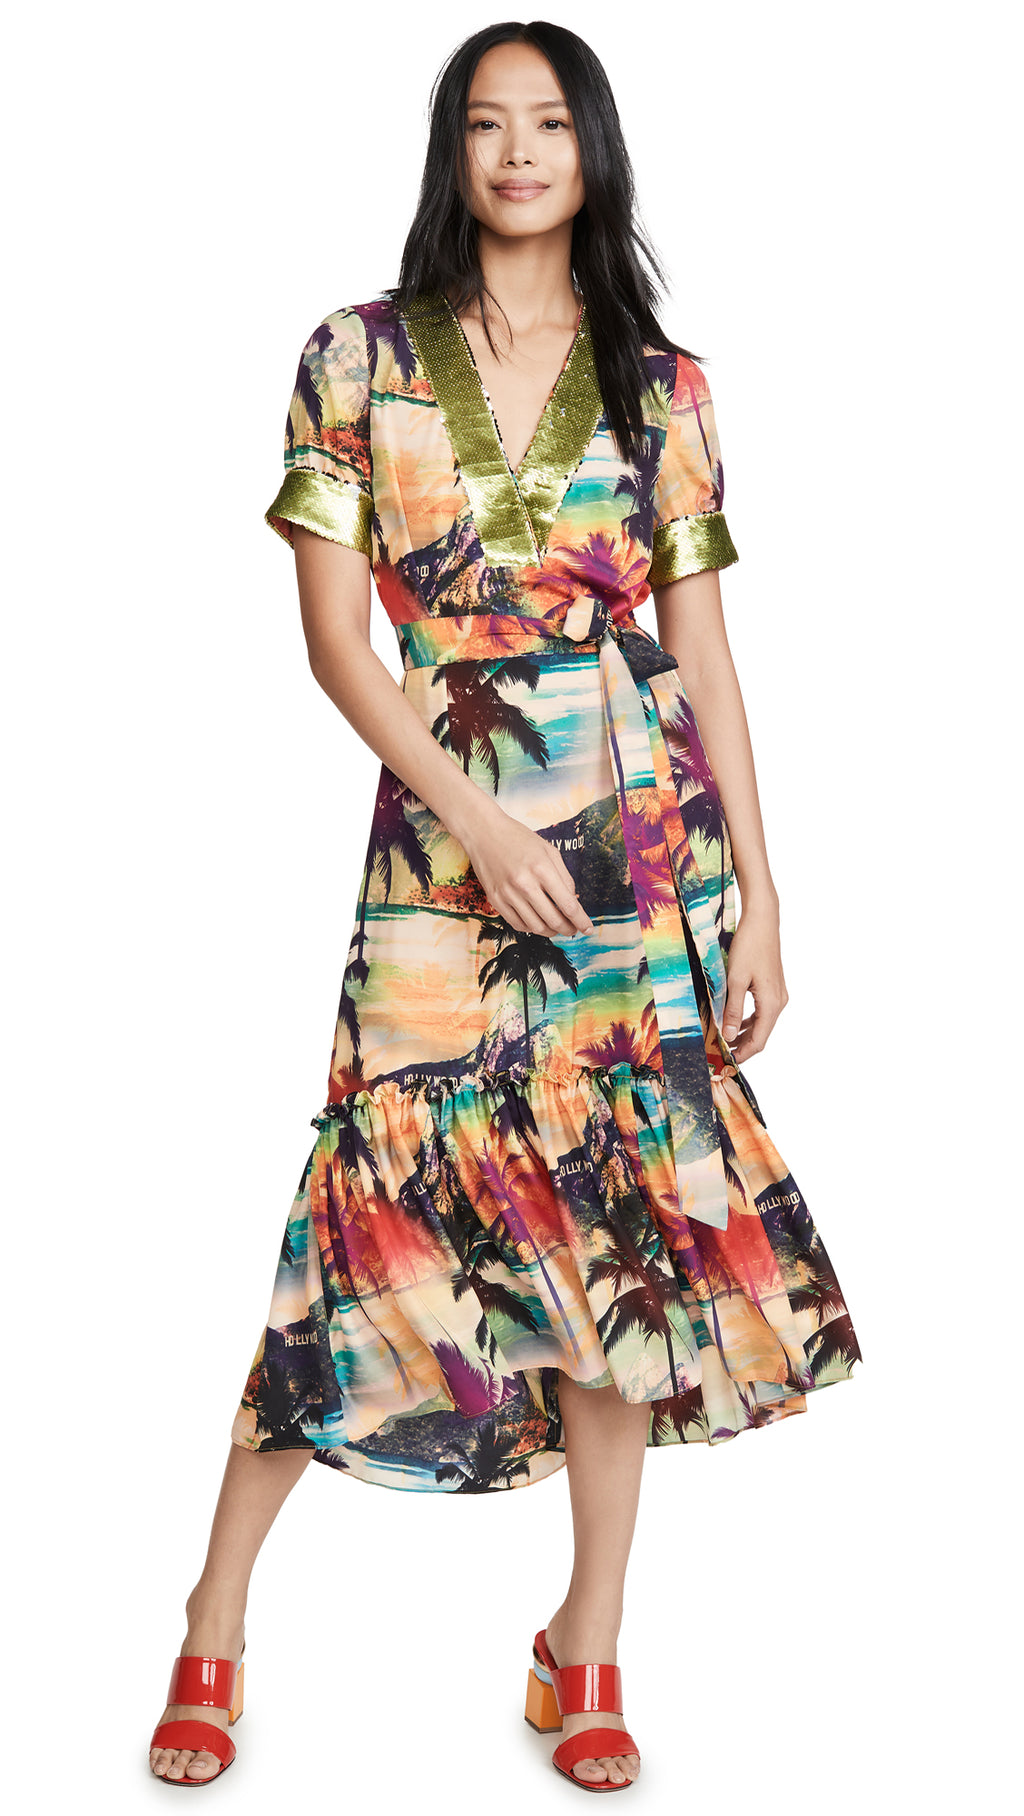 Le Superbe California Hollywood De Janeiro Beachwood Canyon Dress